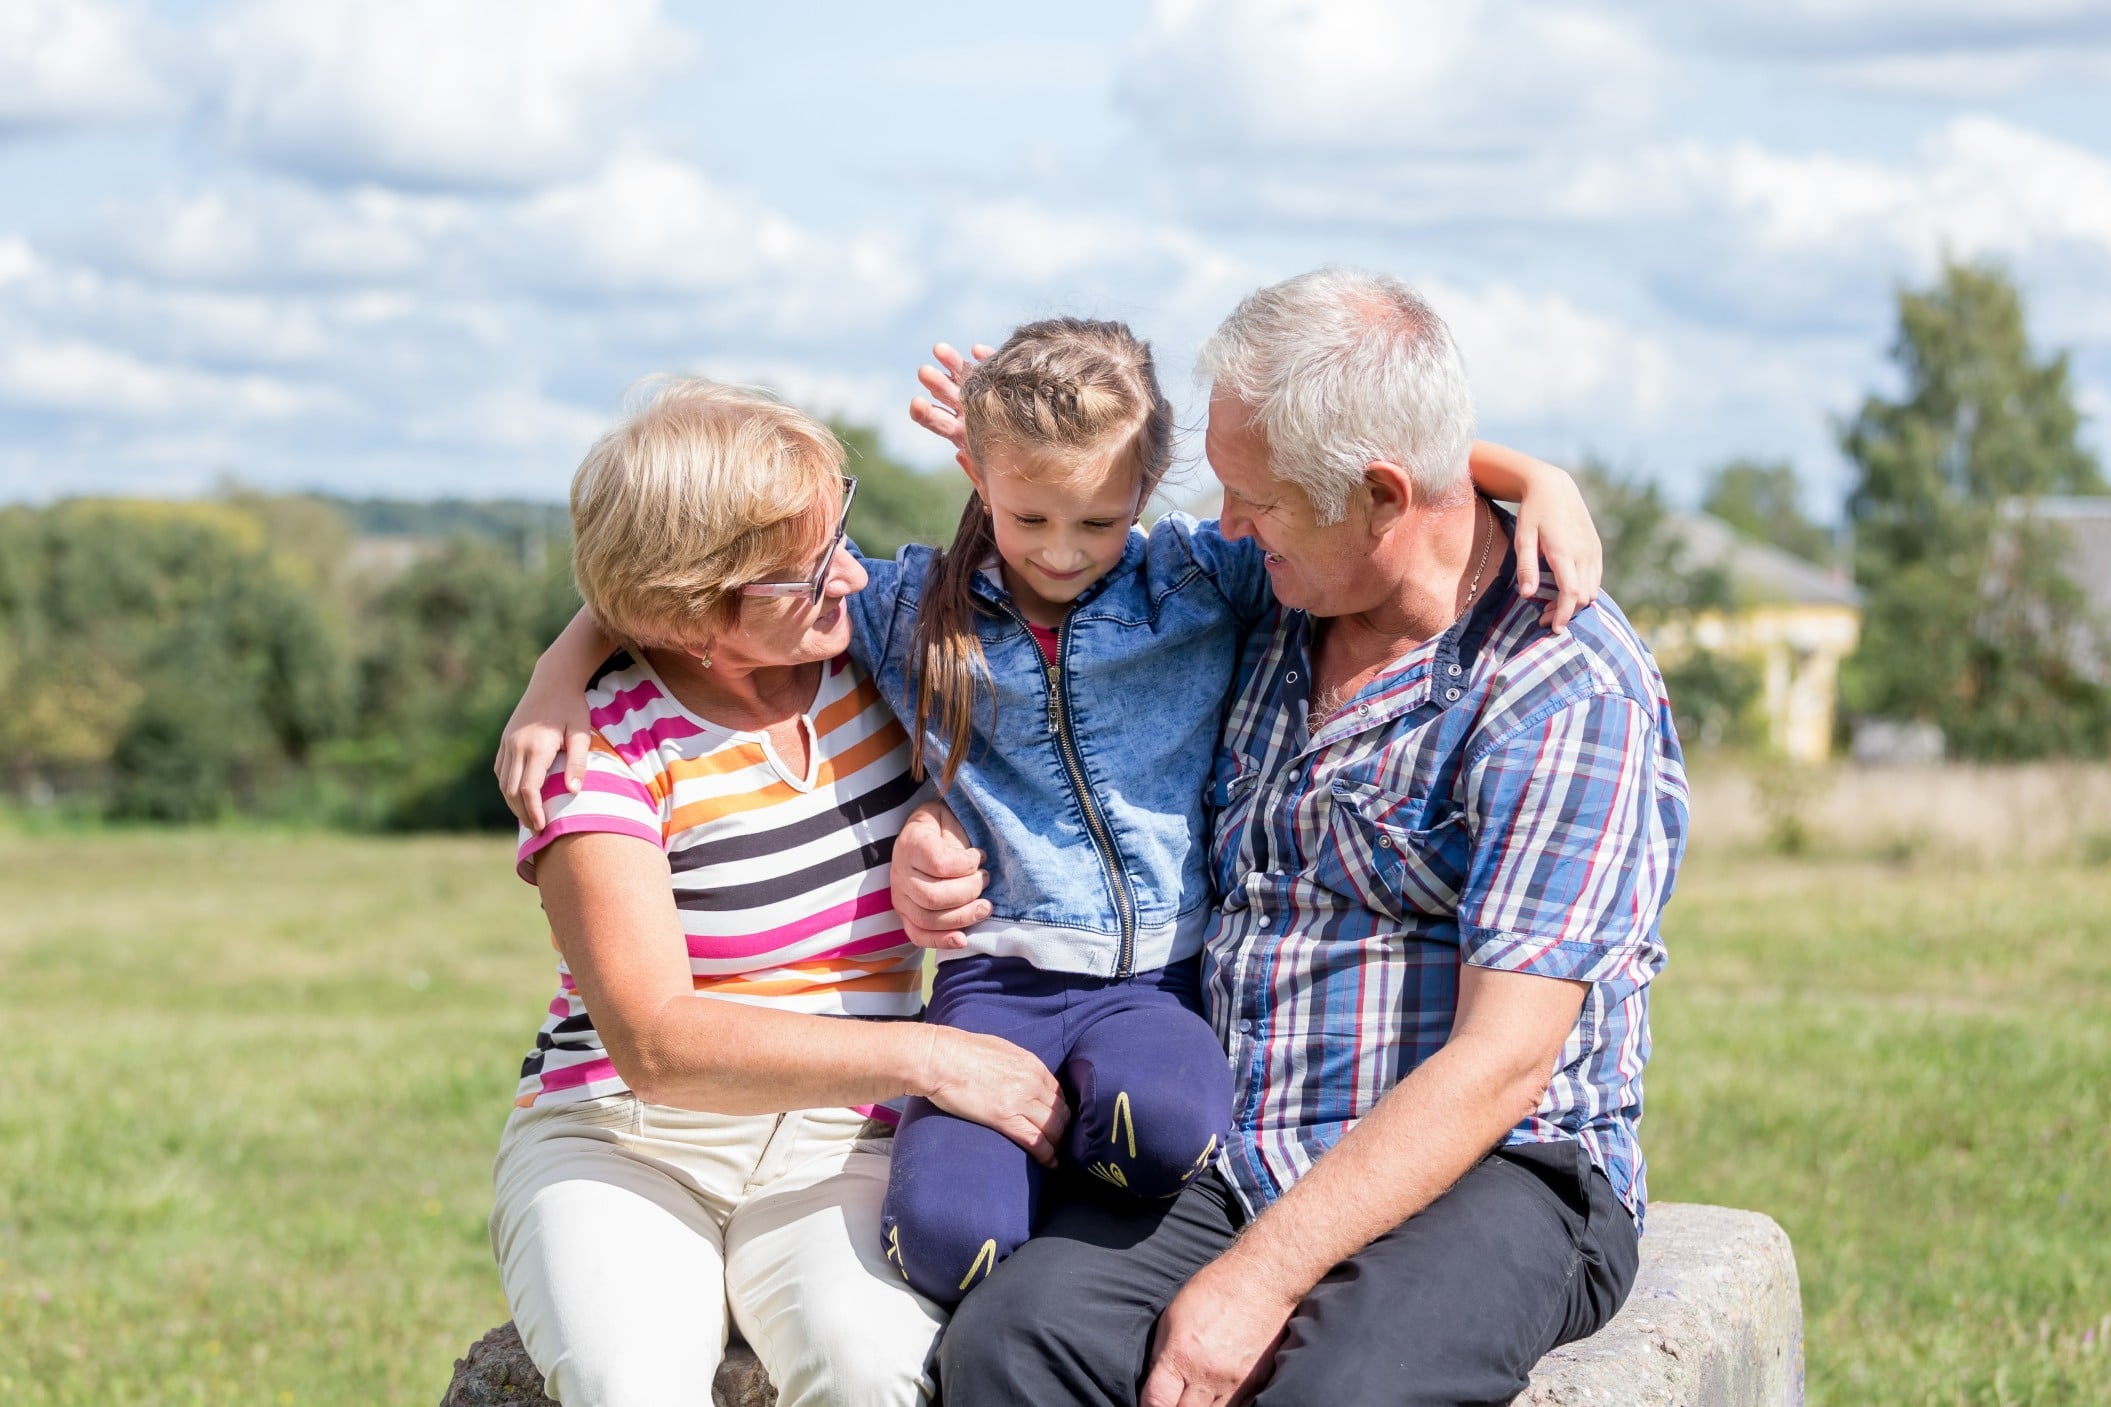 Grandparents with Granddaughter in a grassy field on a sunny day